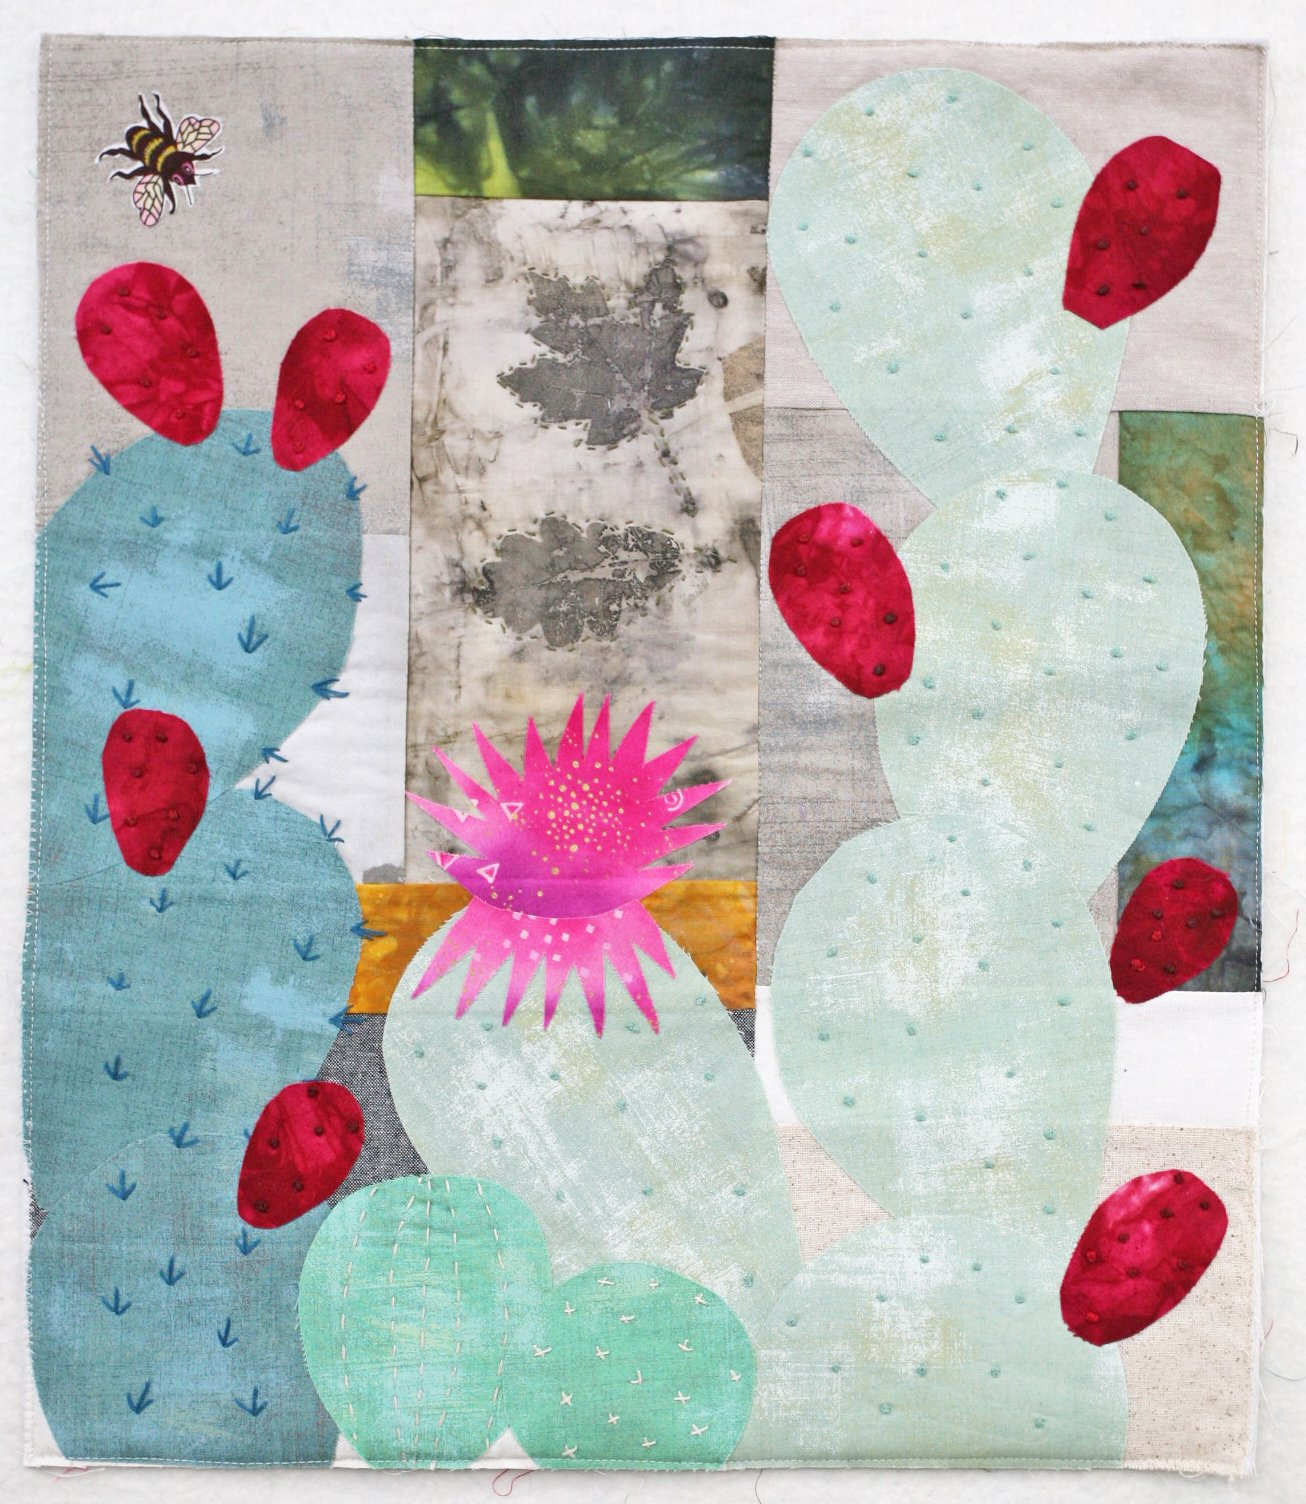 Reut's Prickly Pear Cactus Collage